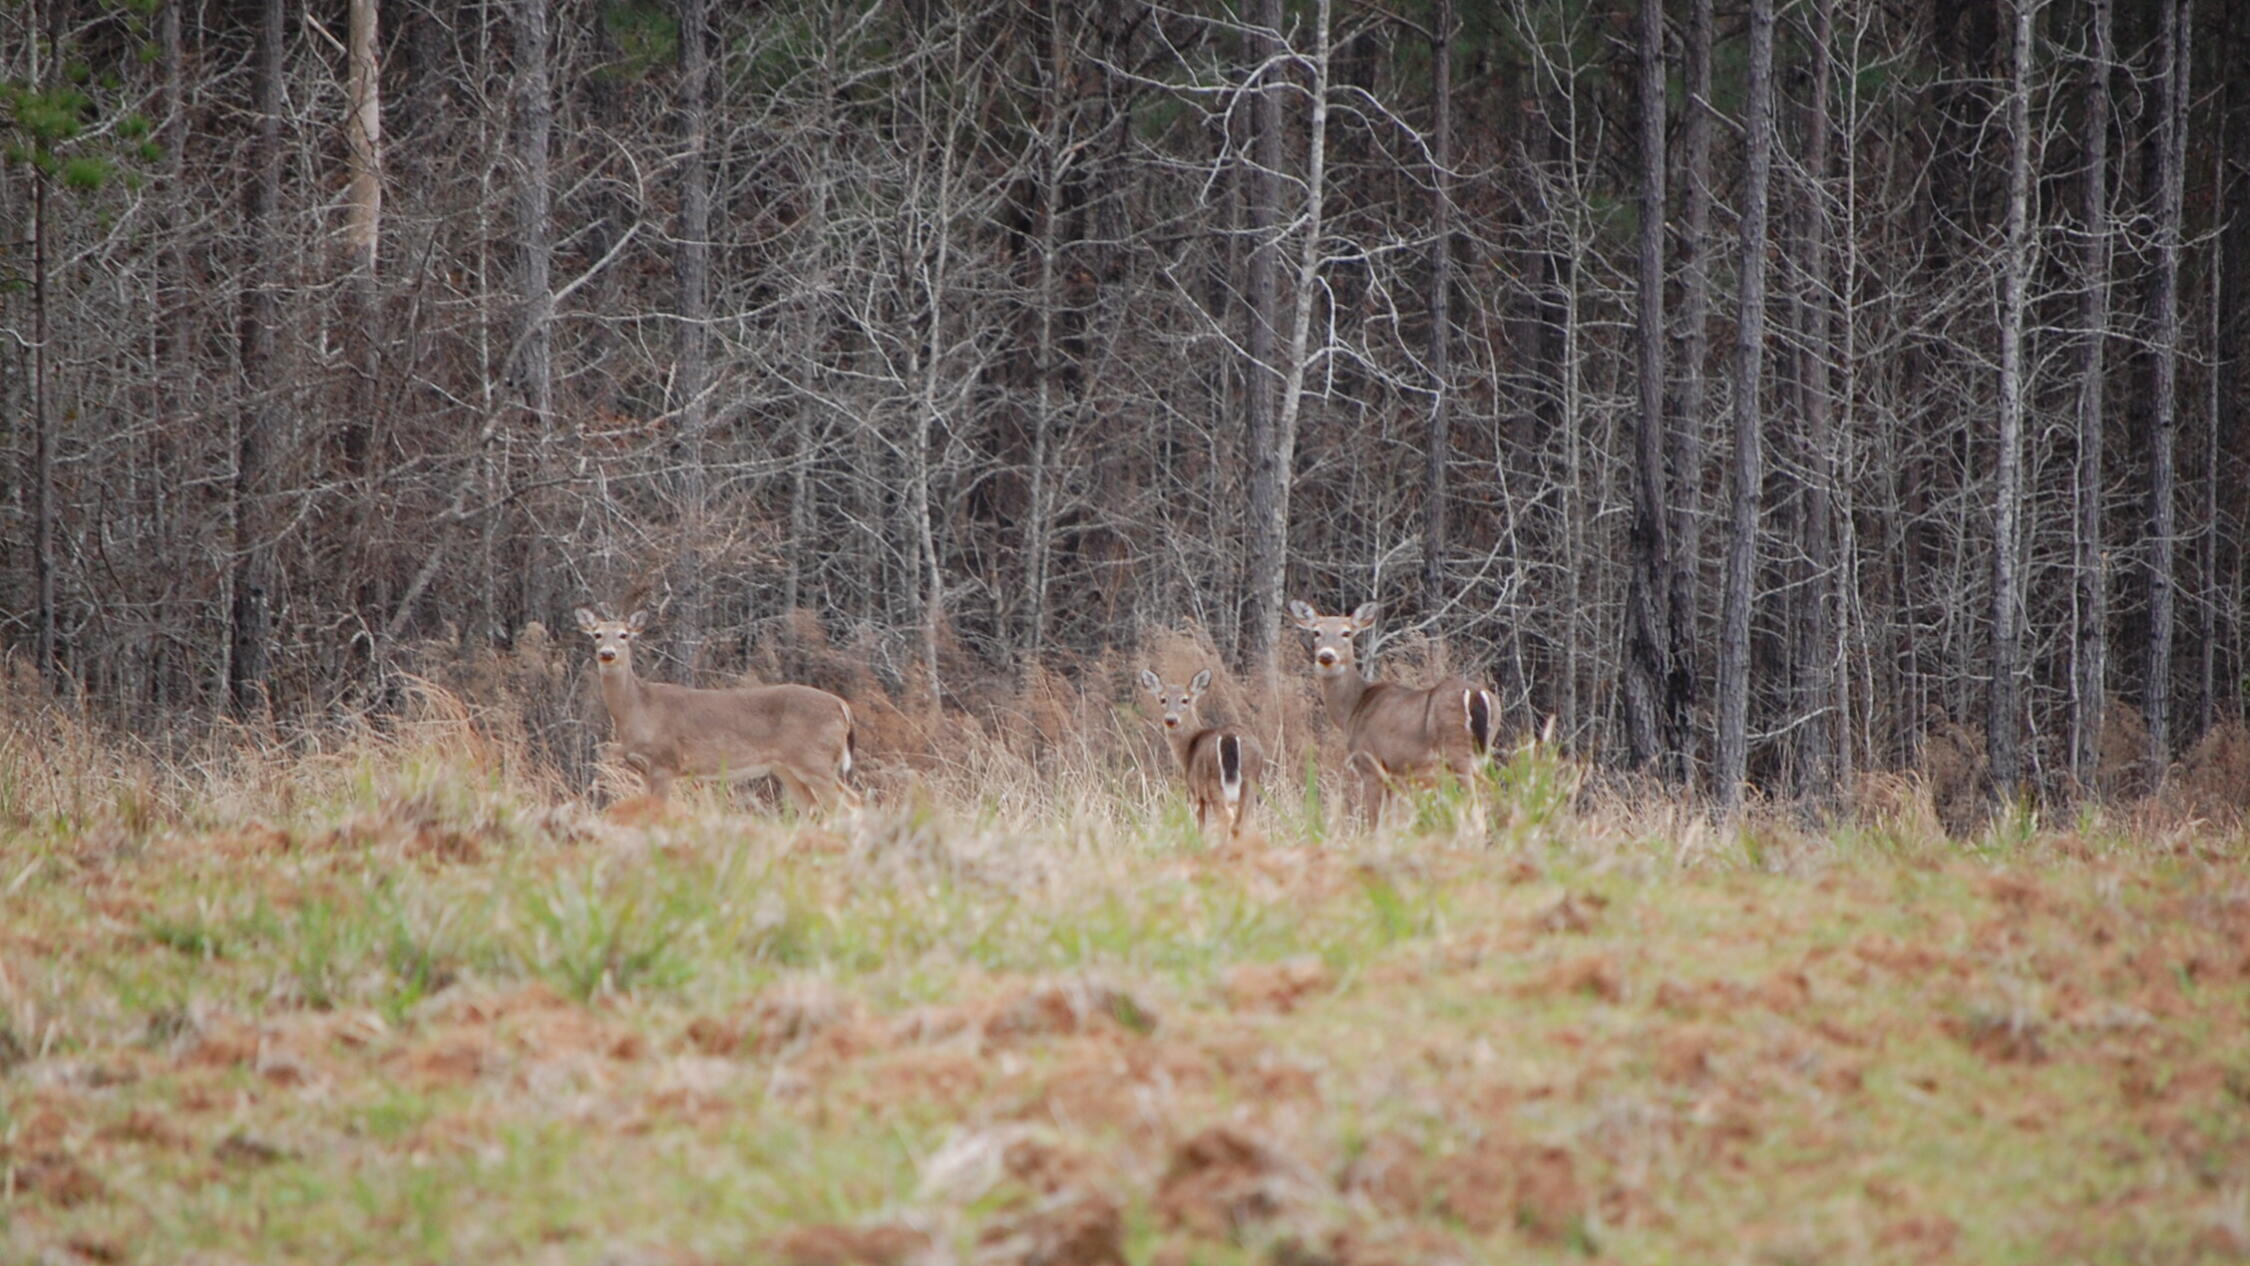 Deer stand in a clearing in front of a forest